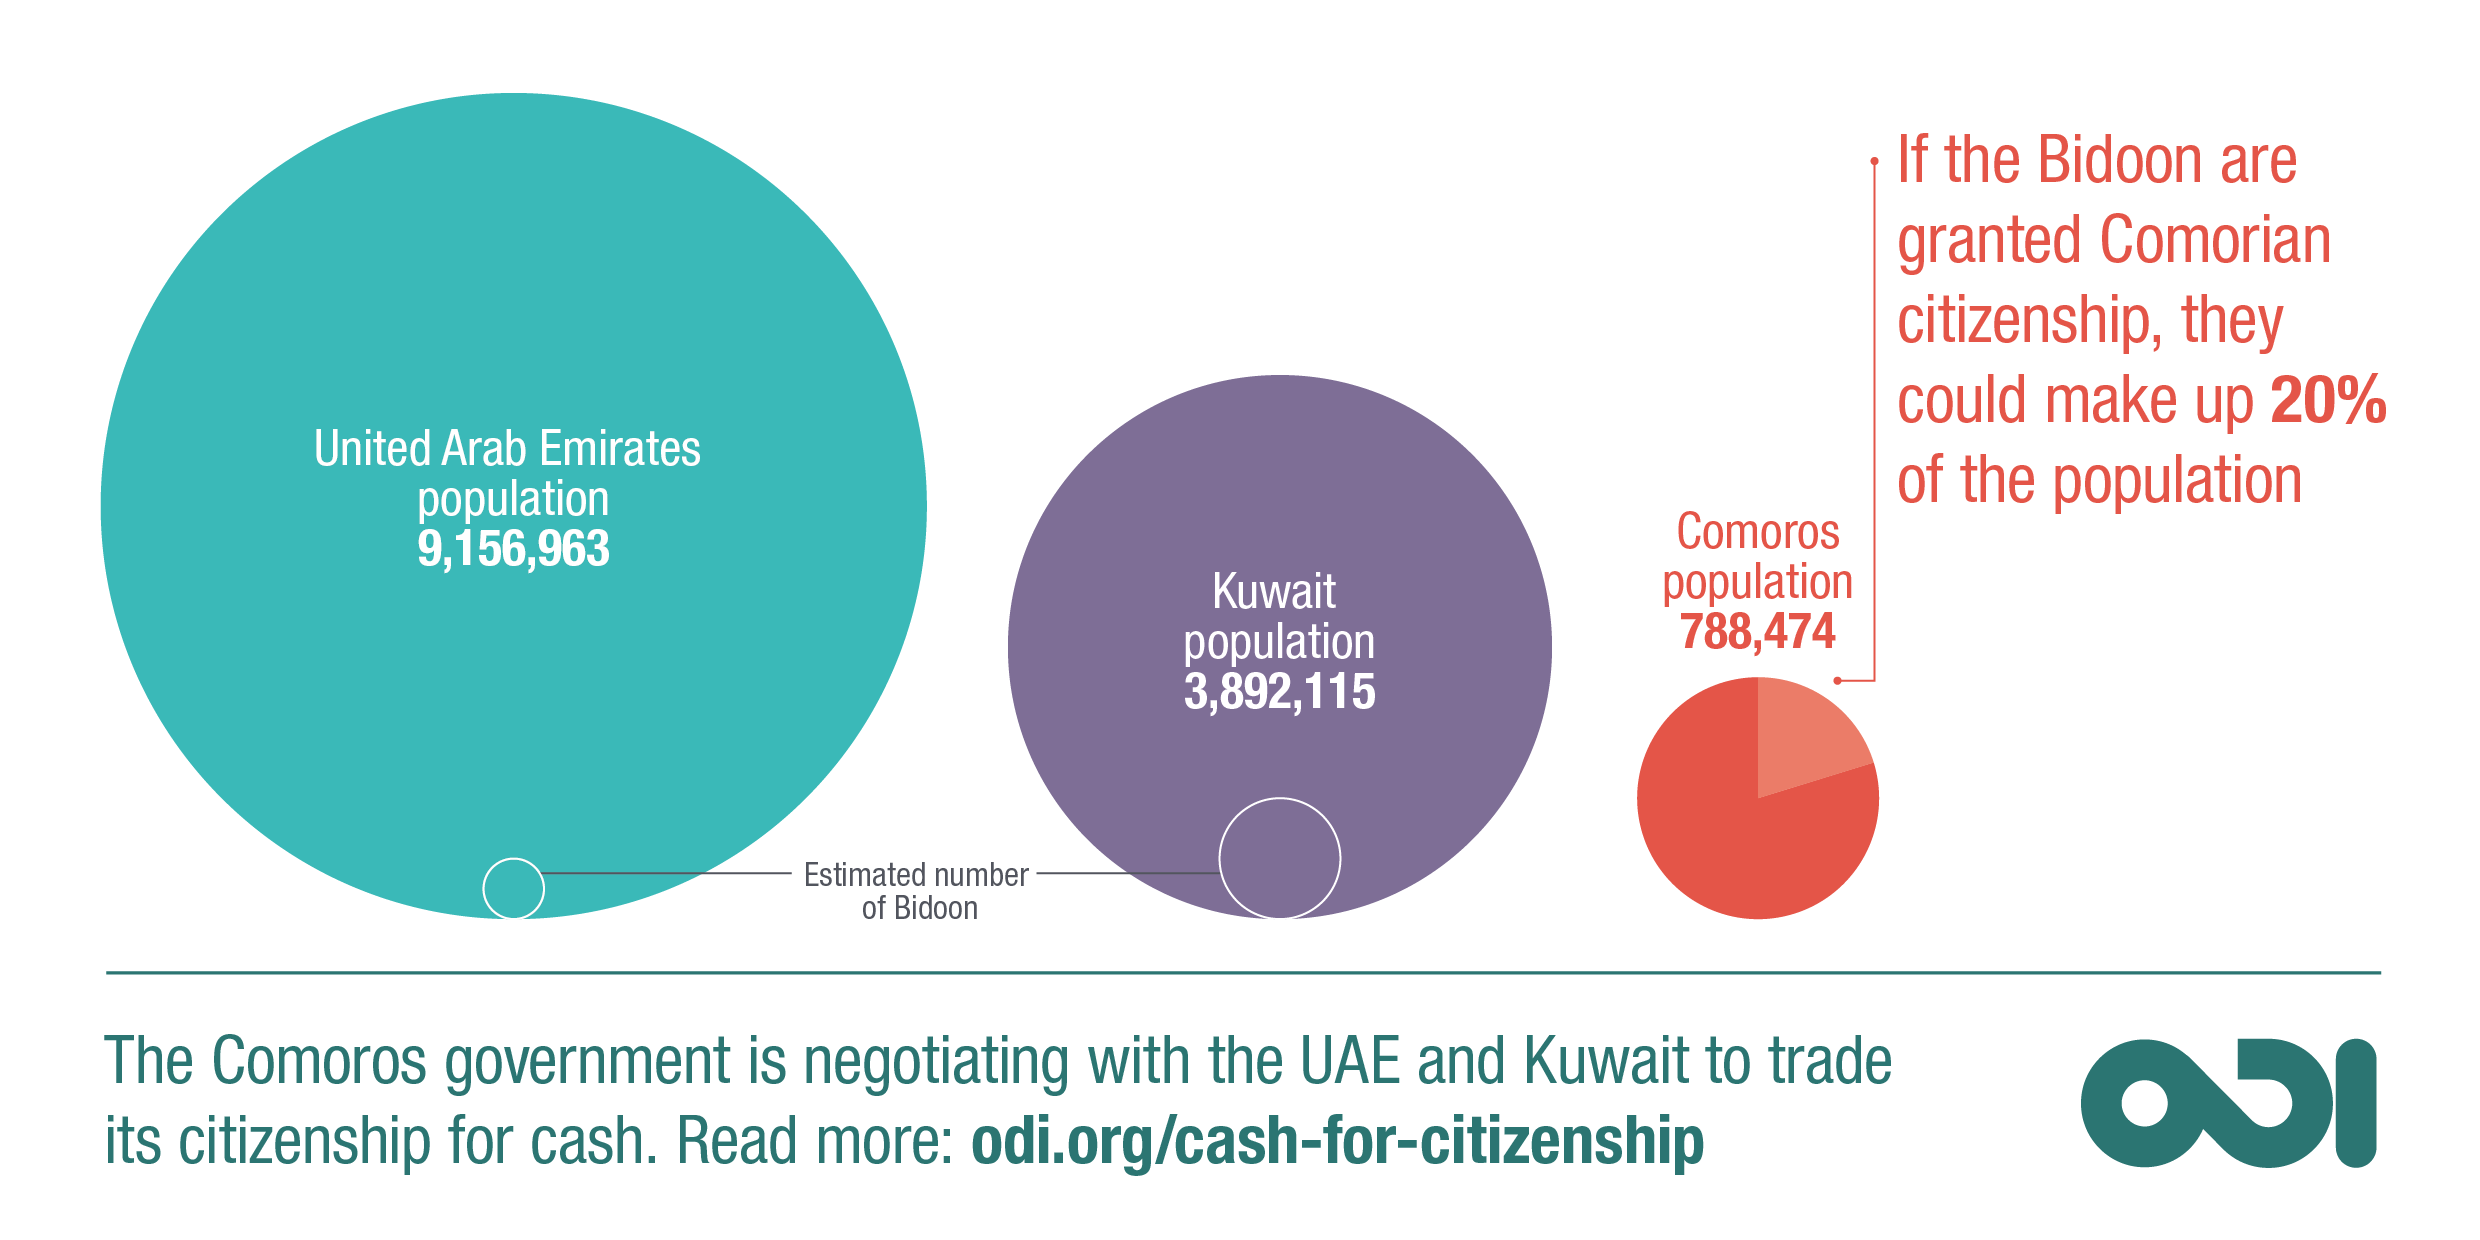 Infographic: If the Bidoon are granted Comorian citizenship, they could make up 20% of the population